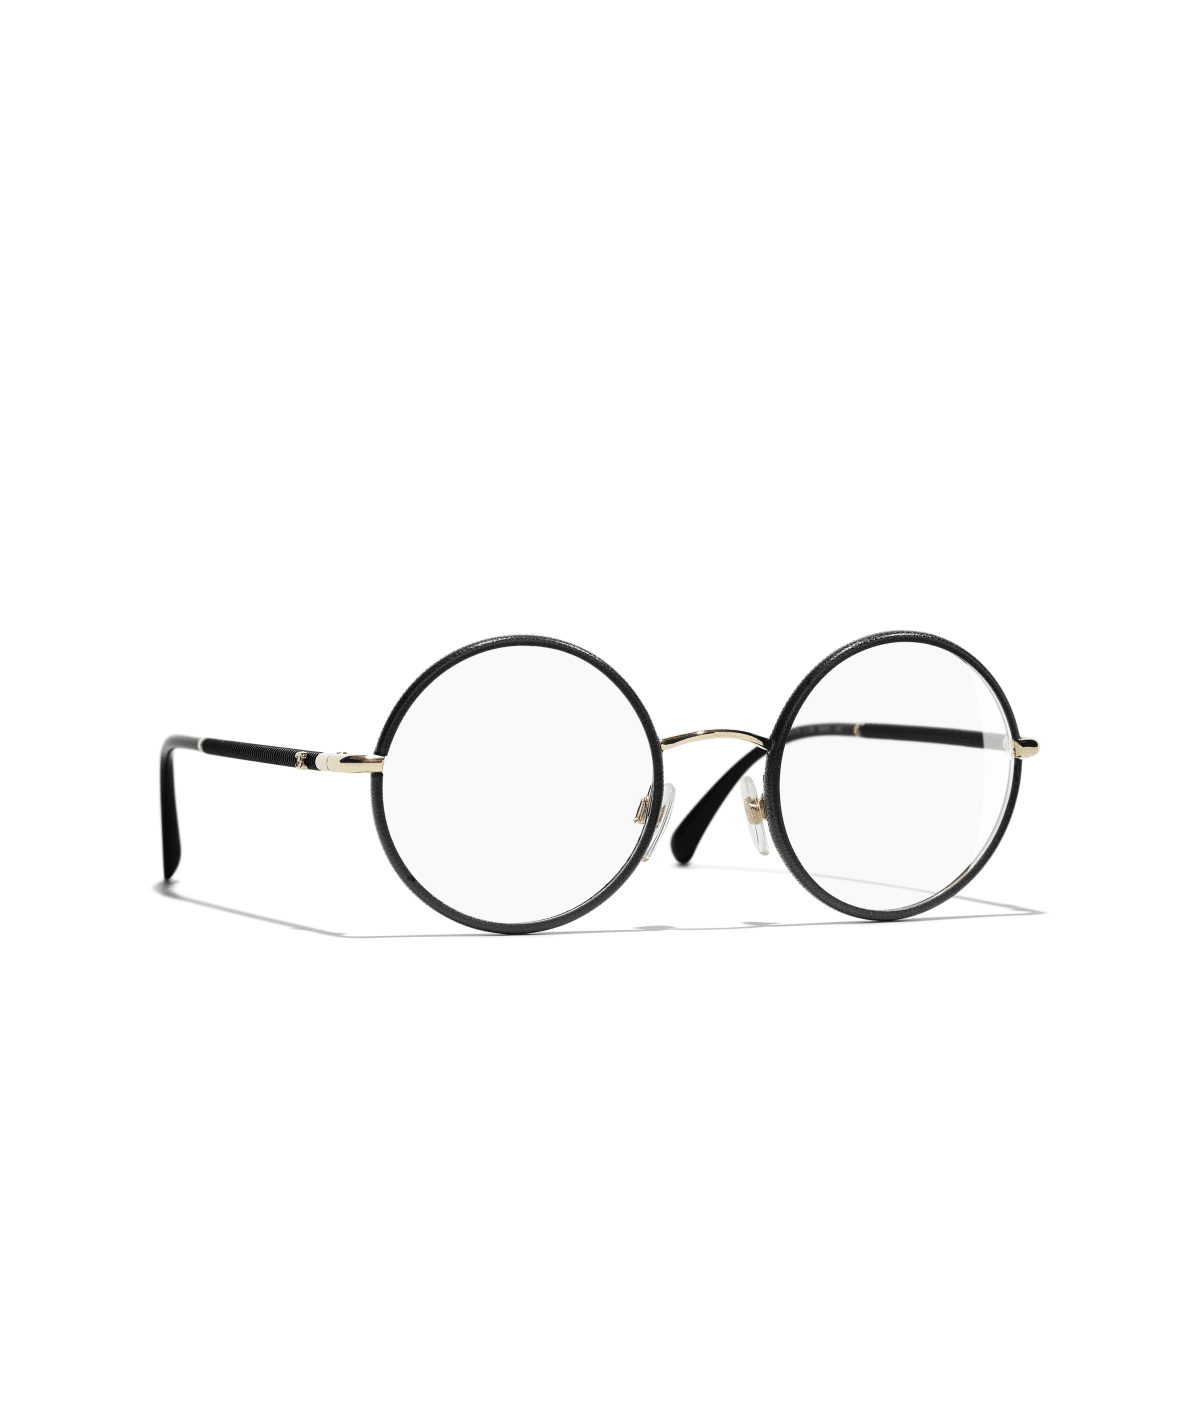 Optical Chanel Round Eyeglasses Metal Black Gold On The Chanel Official Website Round Eyeglasses Gold Chanel Eyeglasses